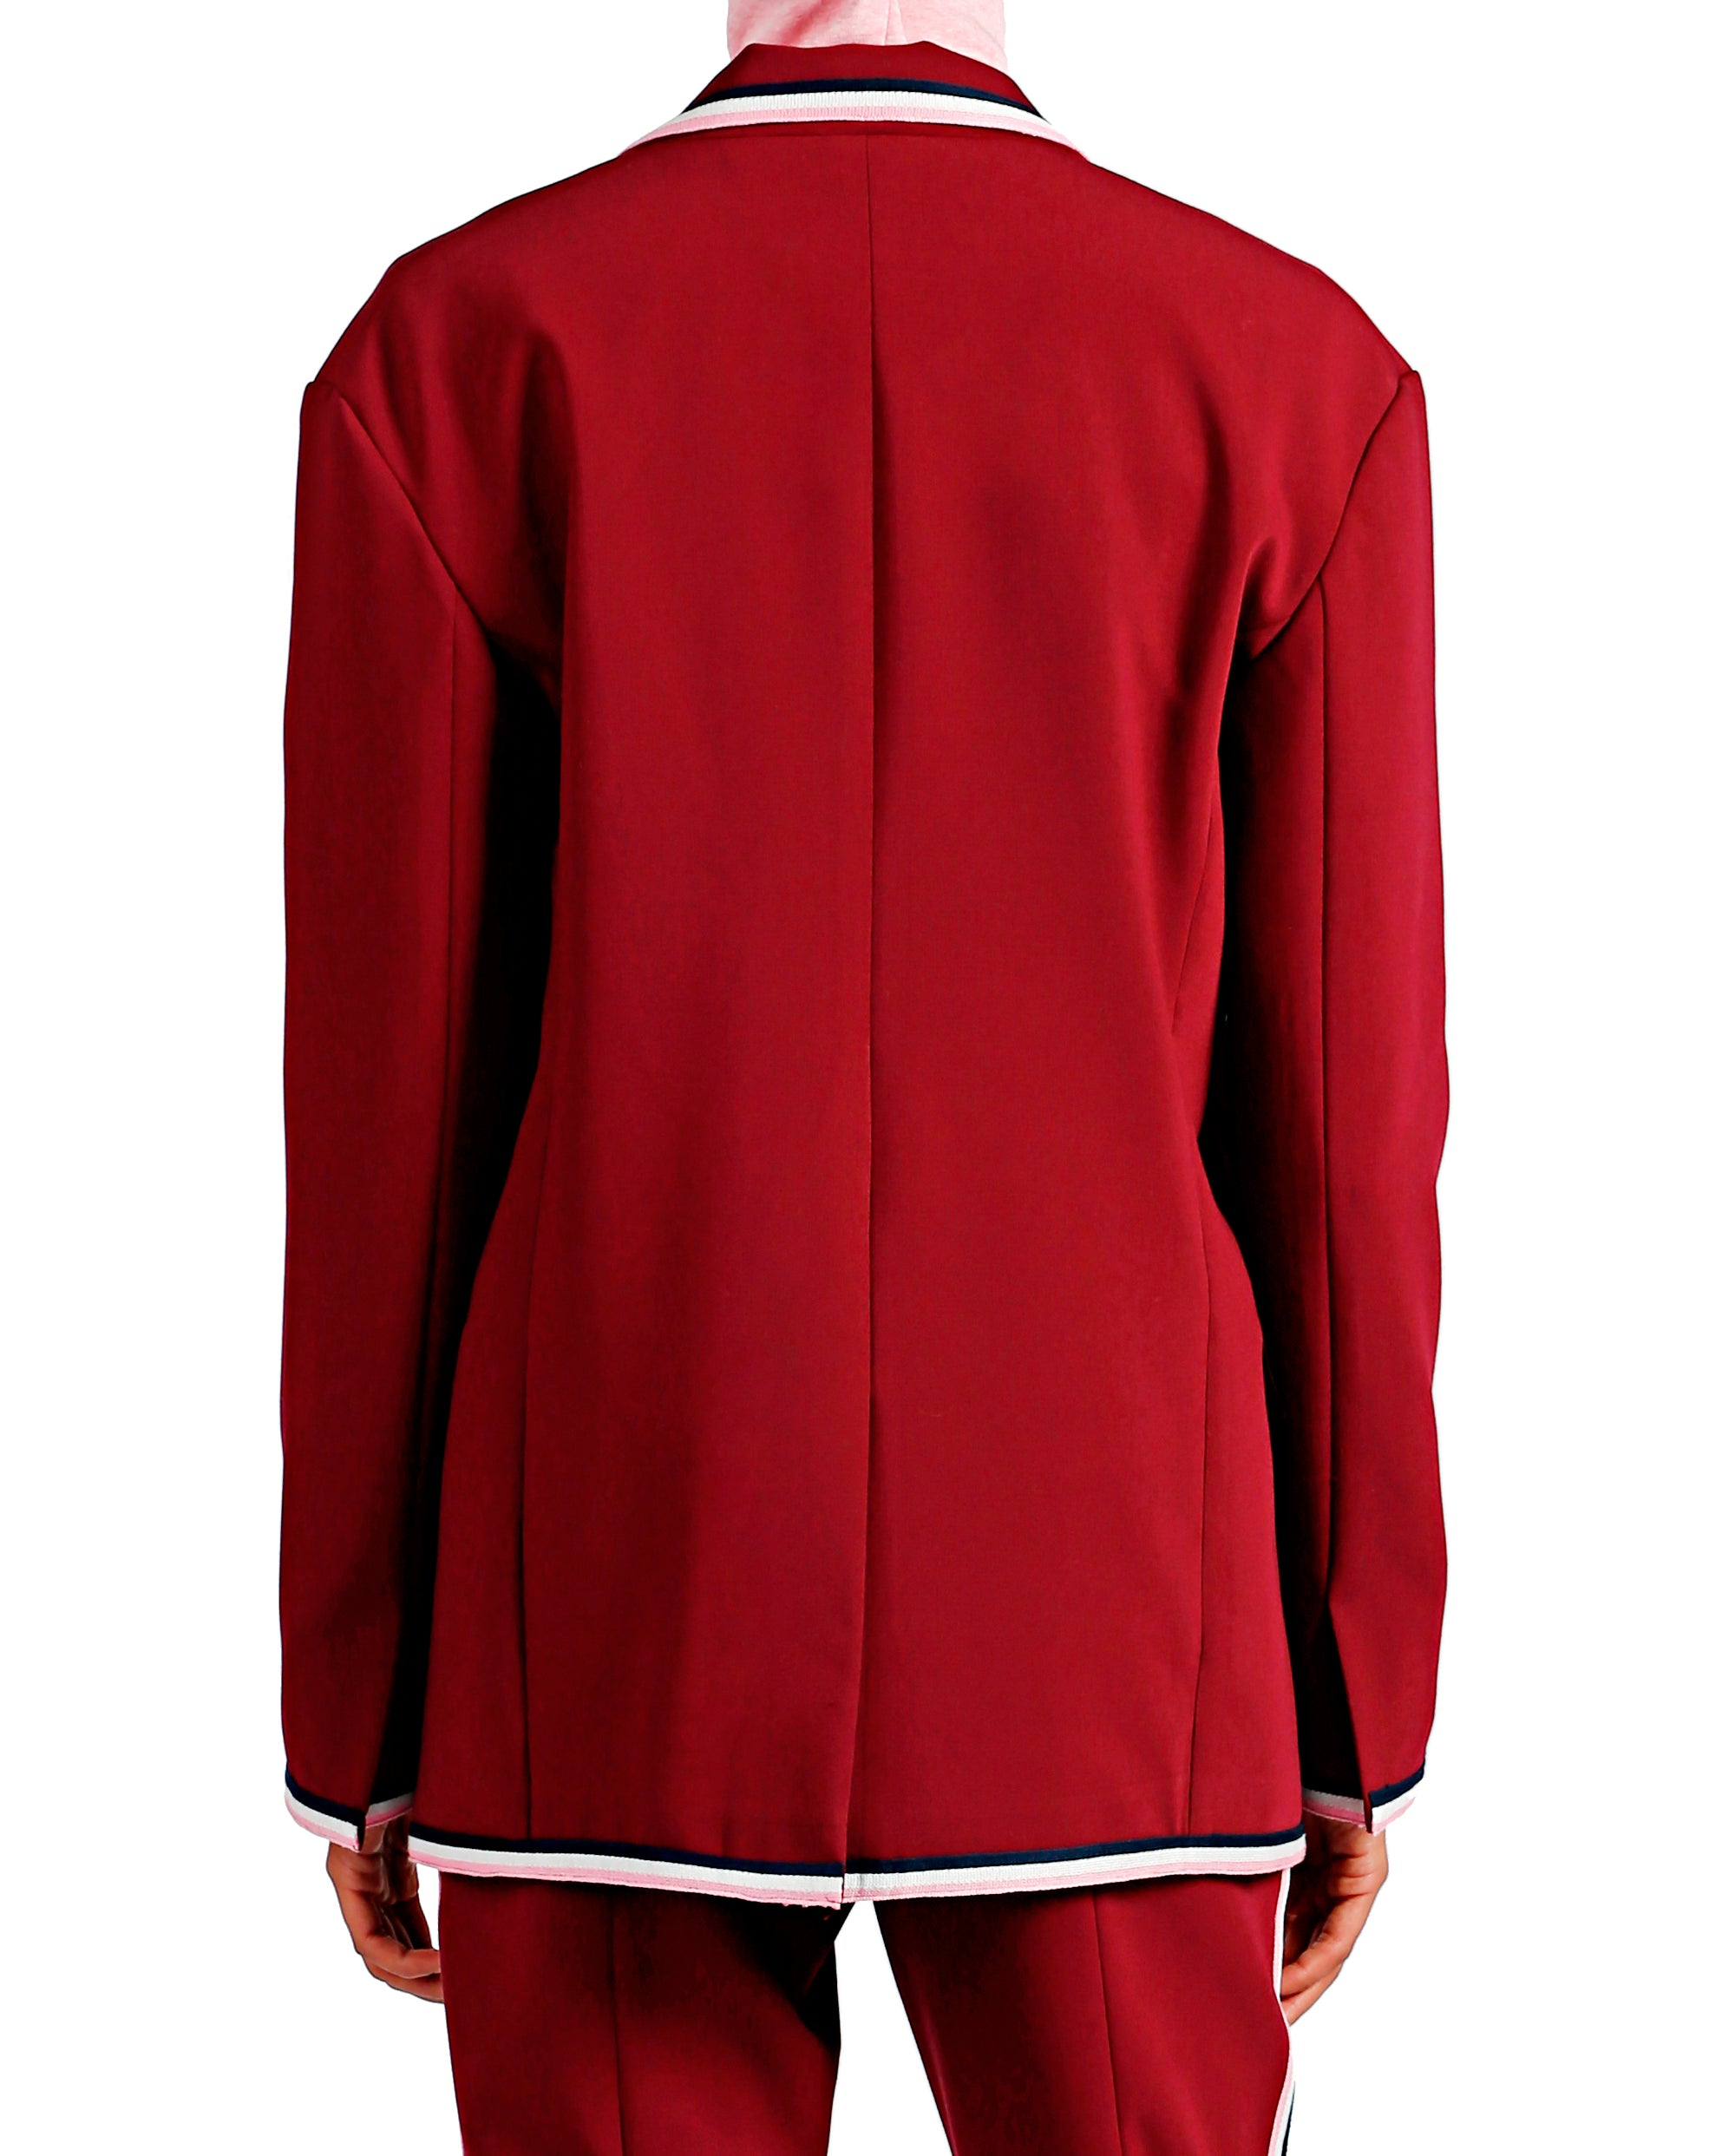 Crepe Cocktail Jacket - Wine